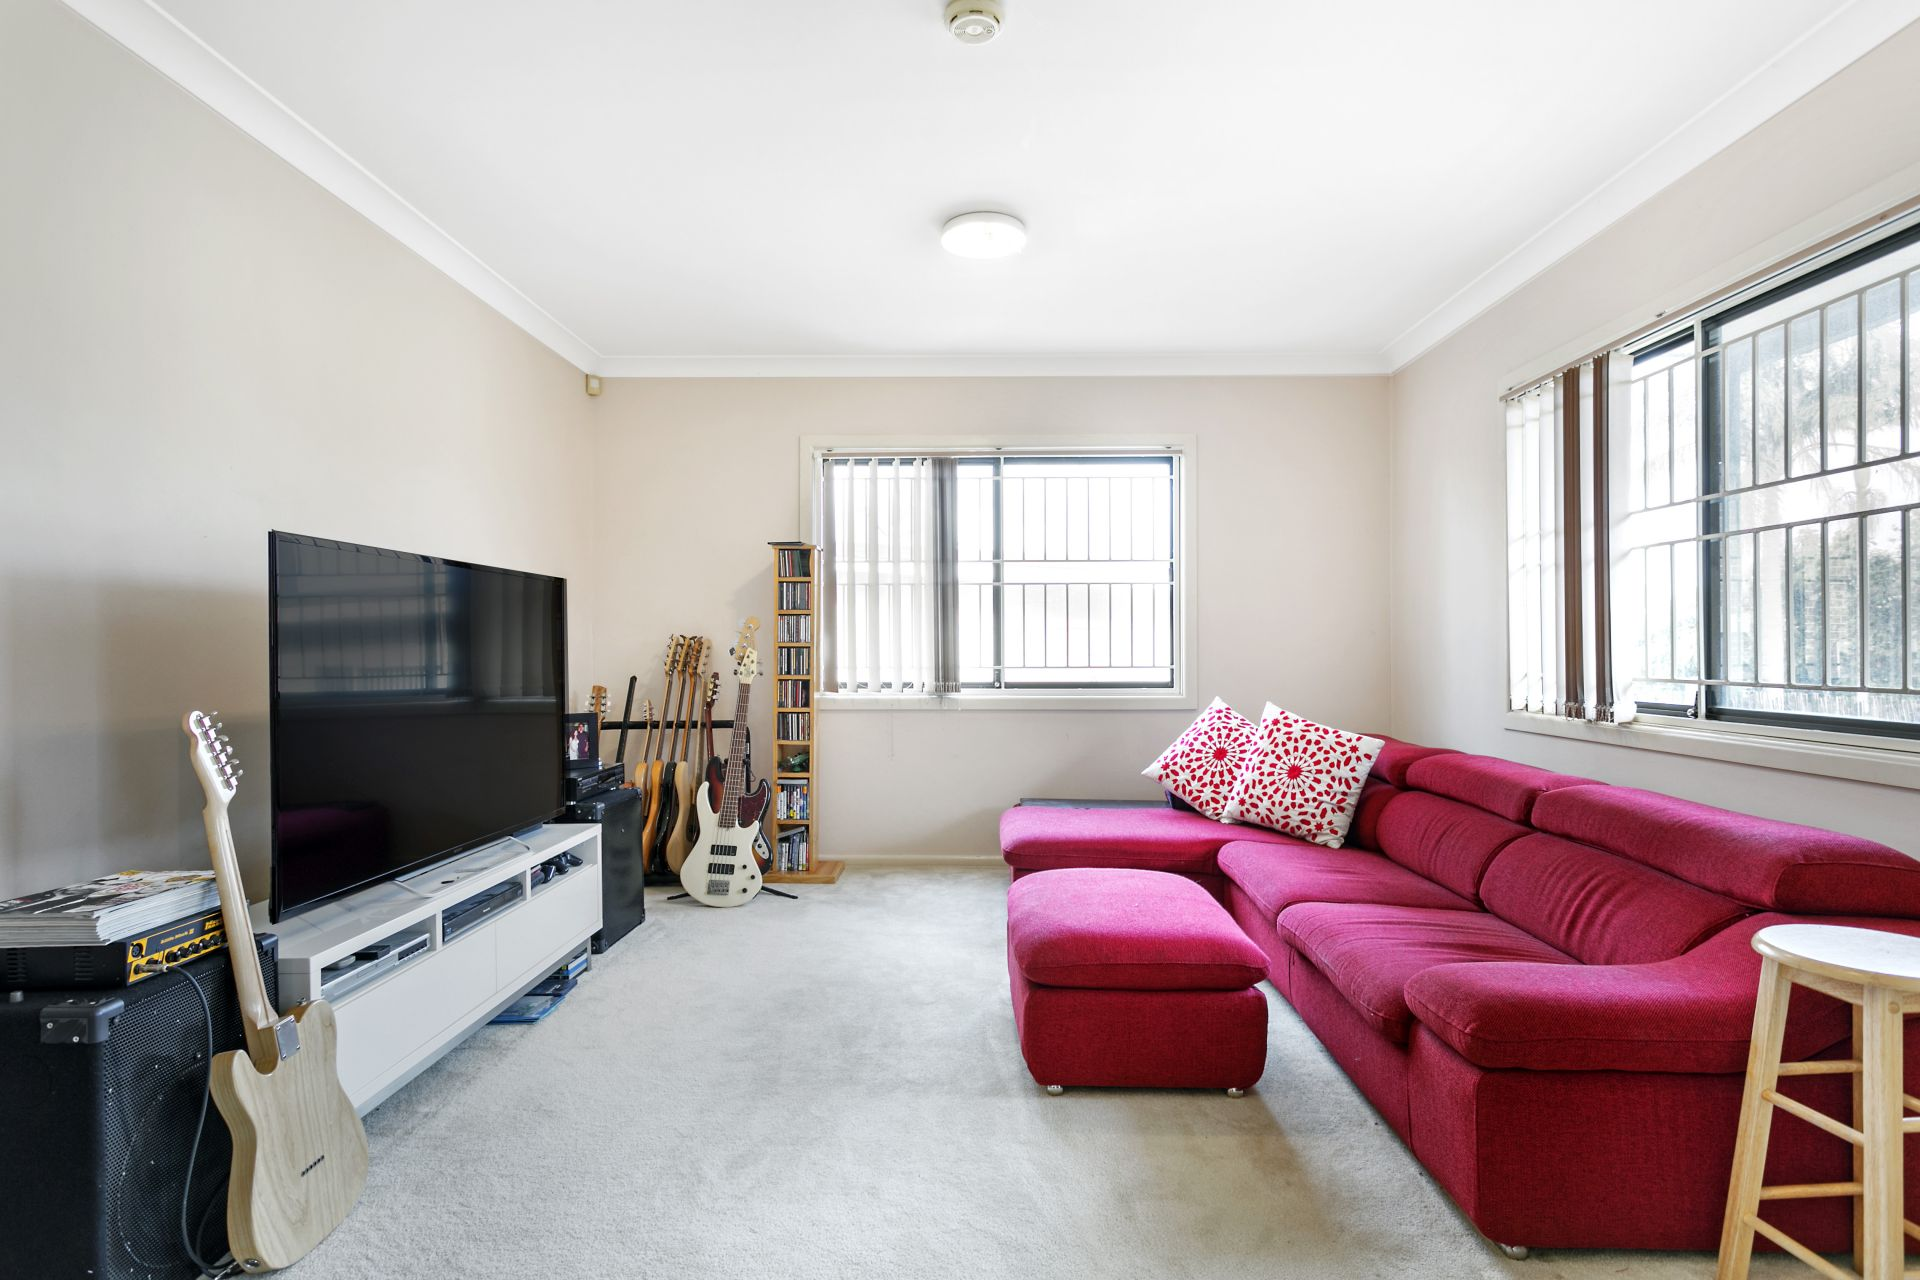 1/54 Gueudecourt Avenue, Earlwood